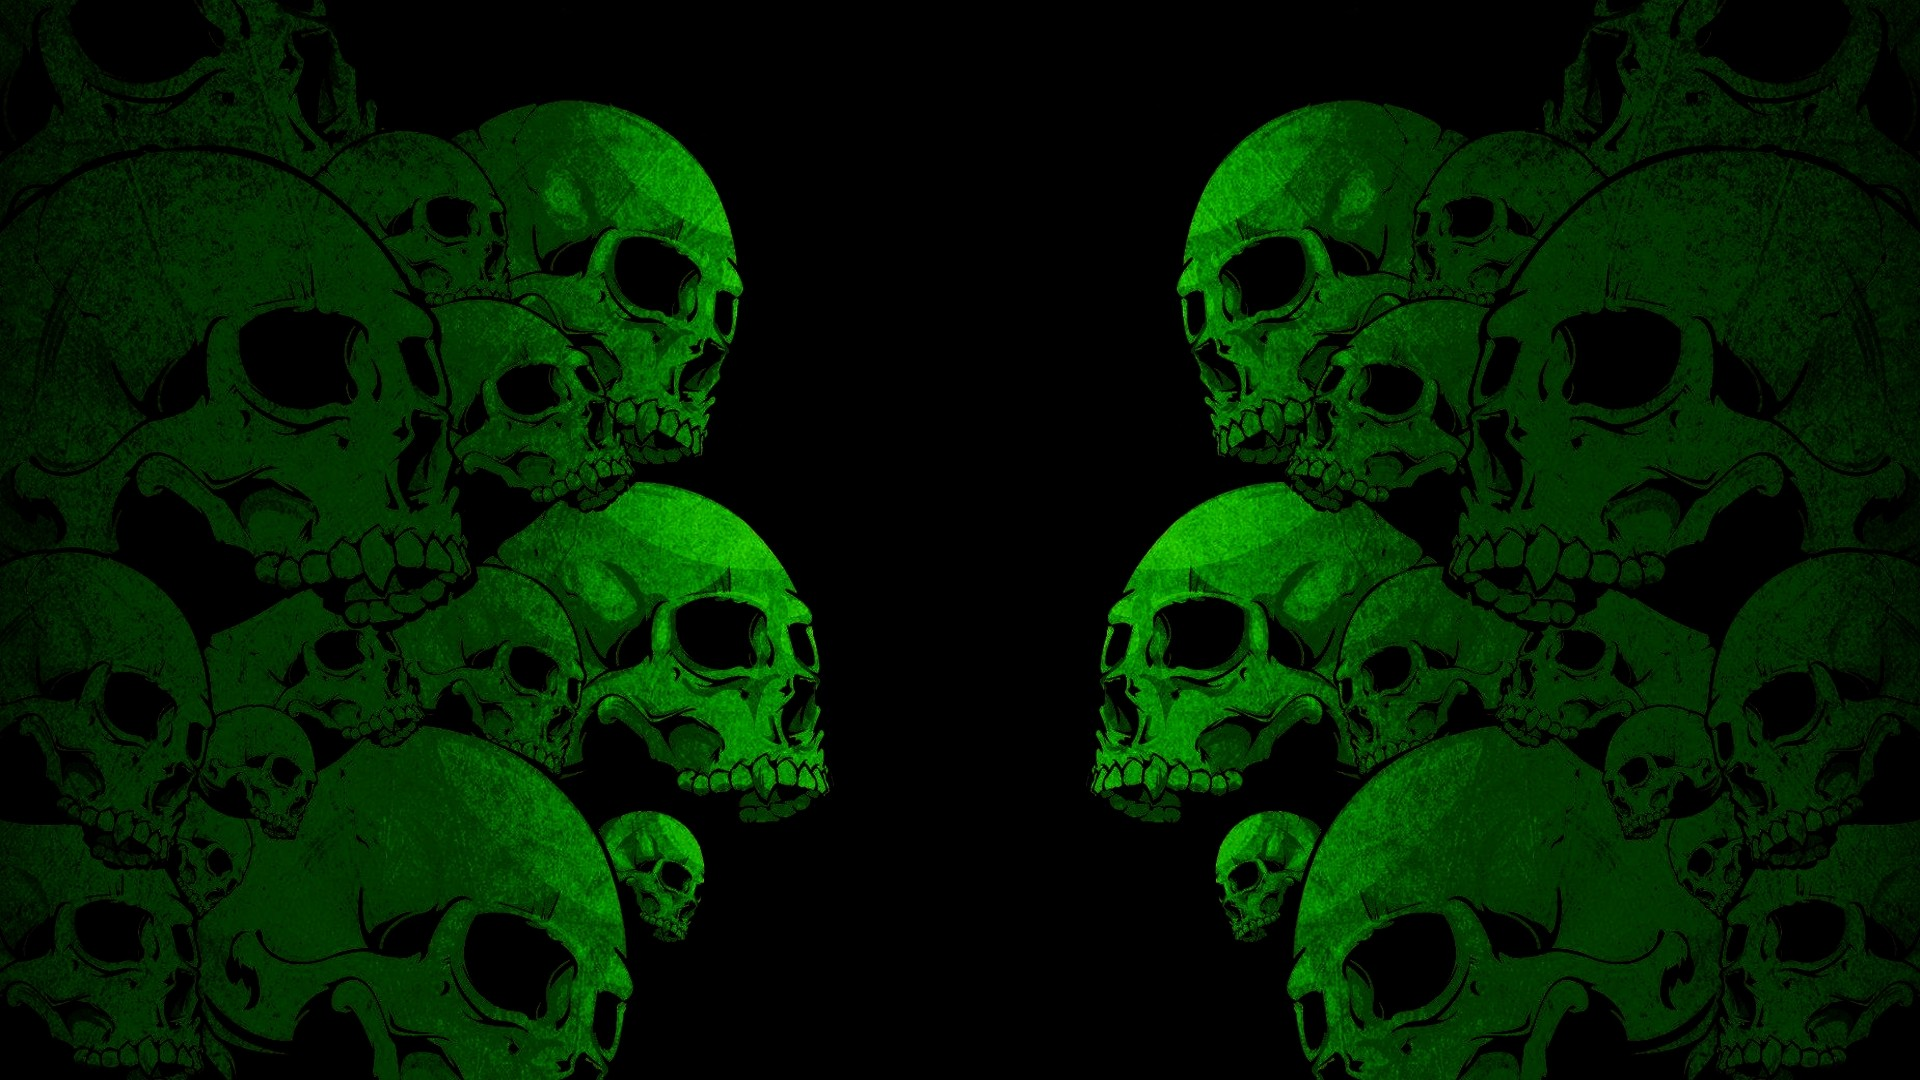 Ipad Retina Wallpaper Art Skull: Skull Background ·① Download Free Awesome High Resolution